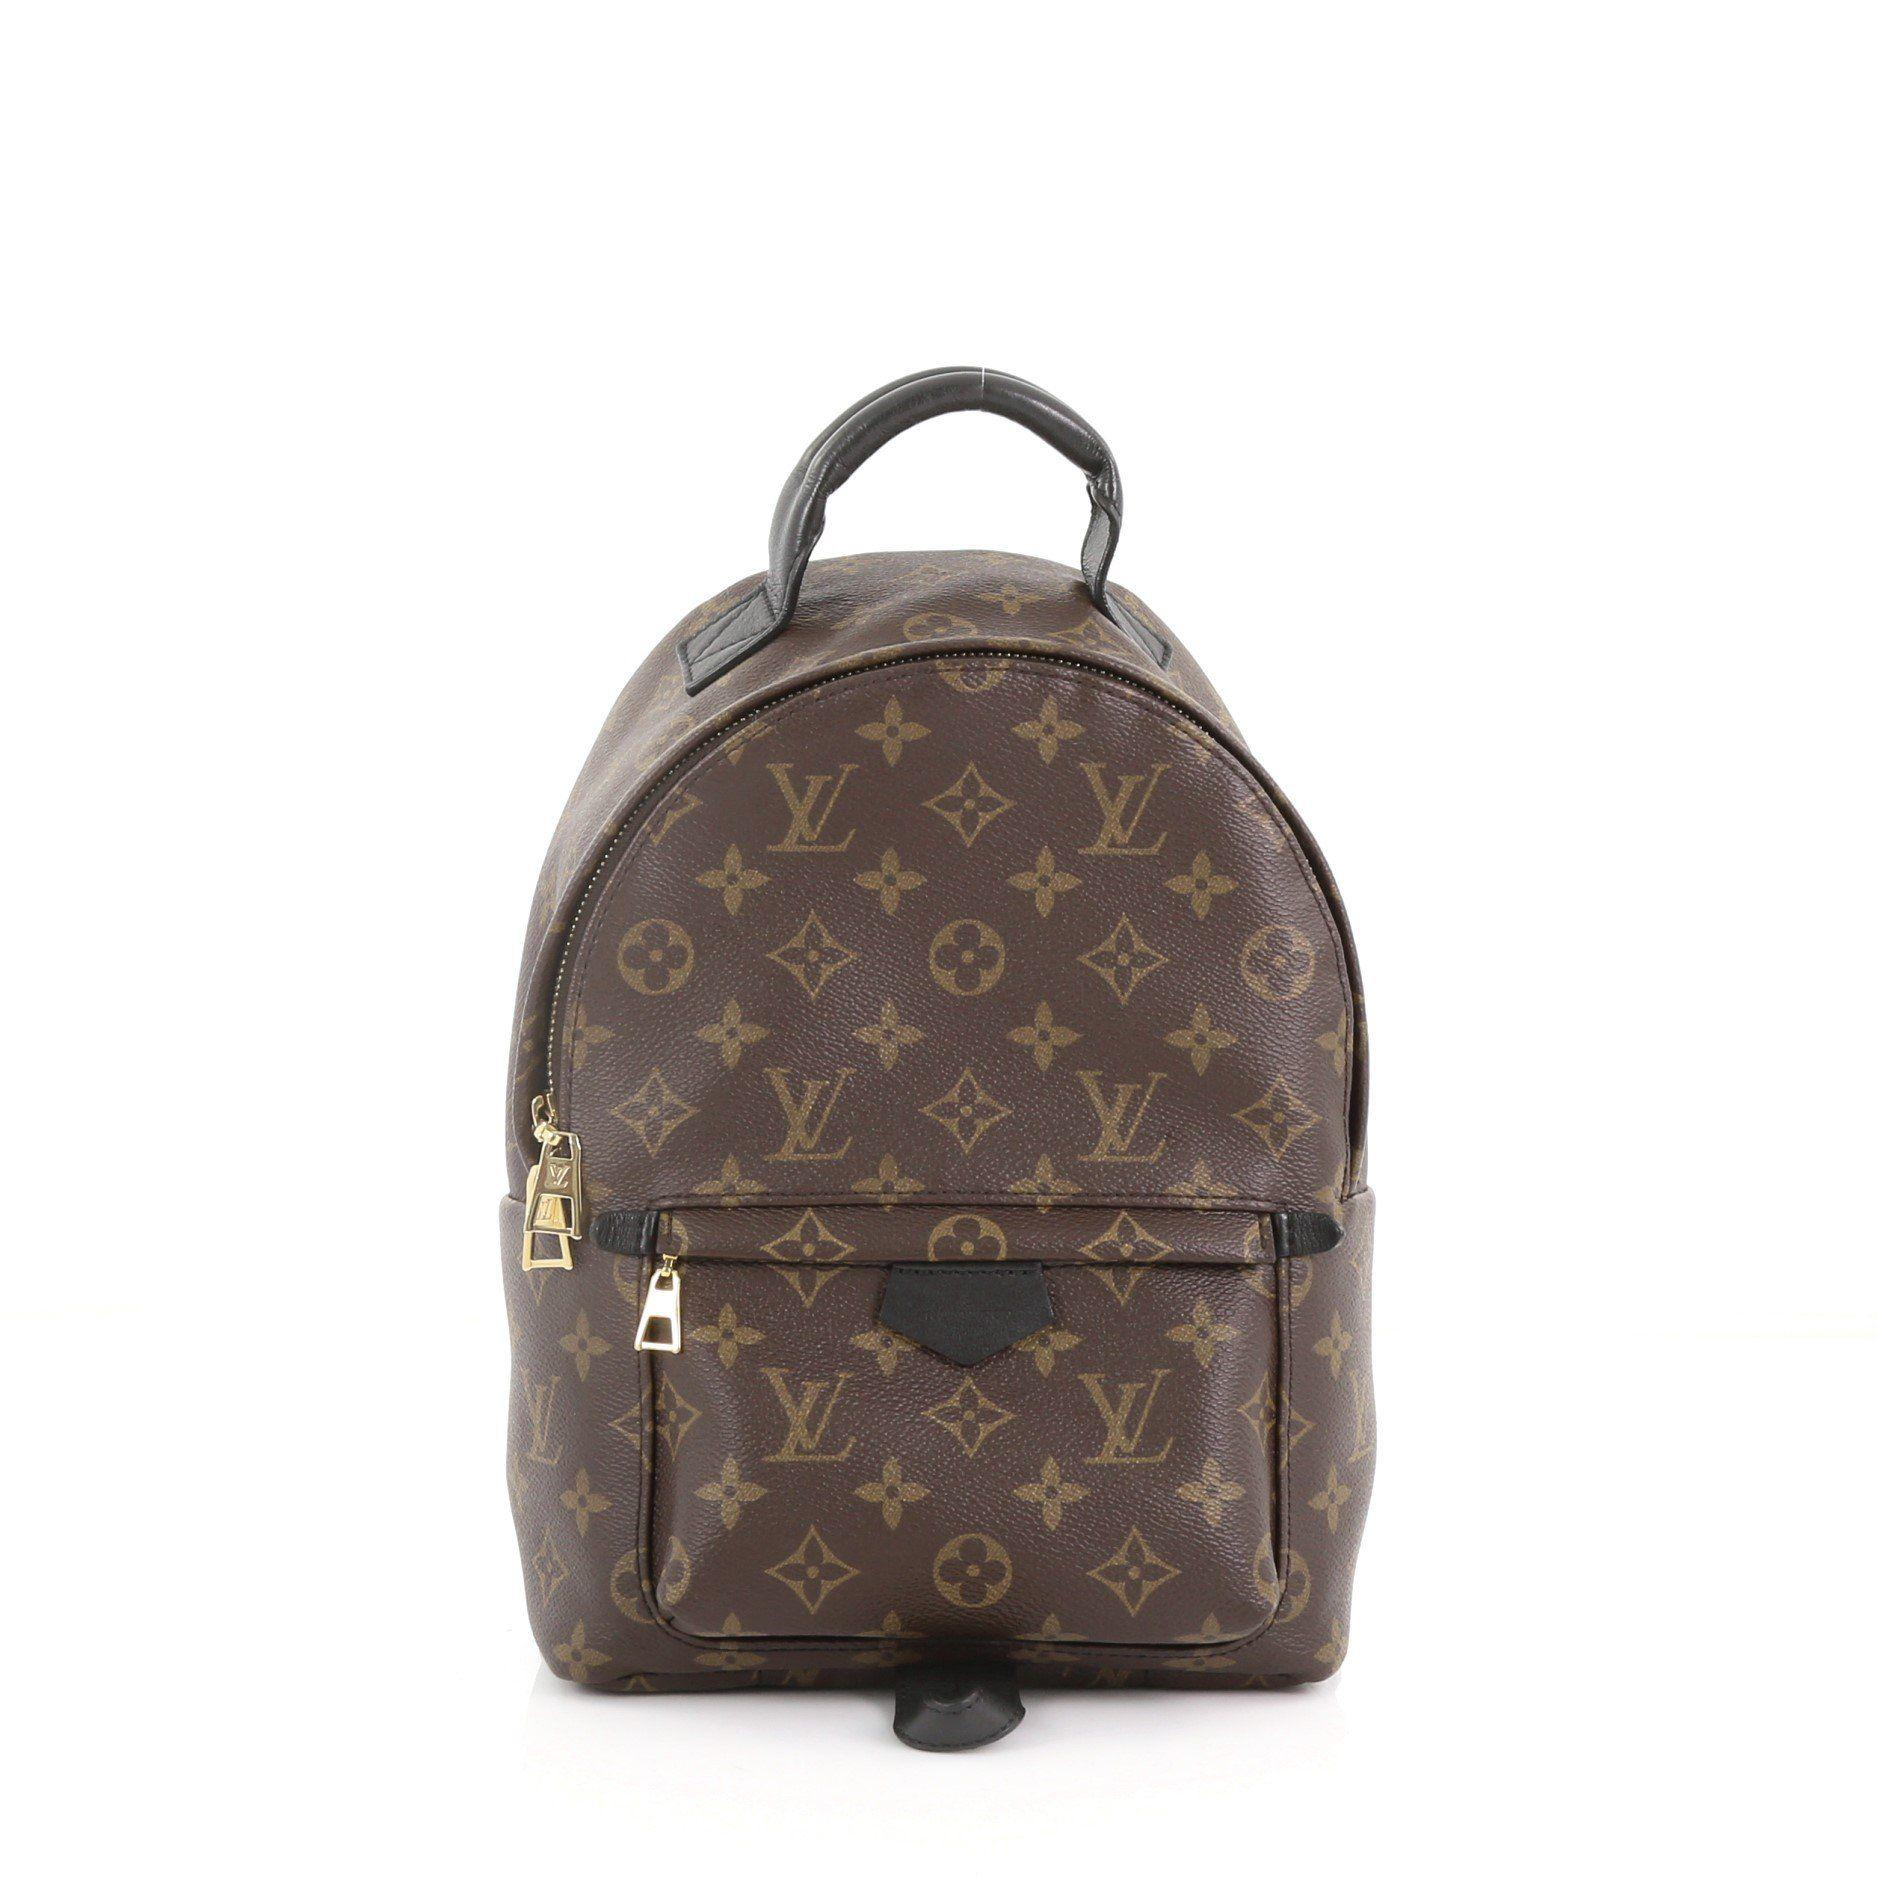 Lyst - Louis Vuitton Pre Owned Palm Springs Backpack Monogram Canvas ... 5f89dd17e8